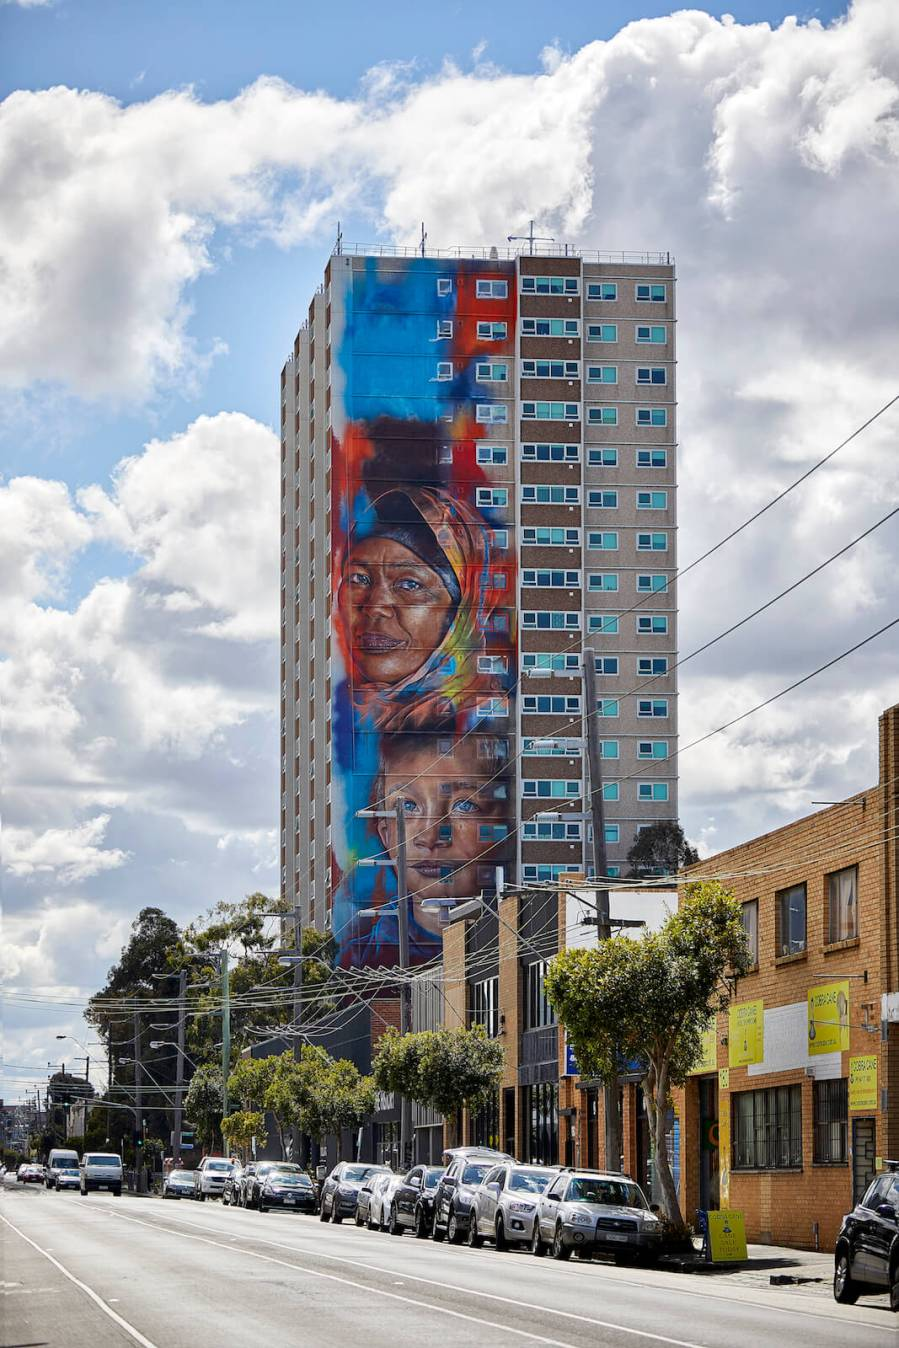 Adnate-street-art-australia-juddy-roller-Nicole-Reed-Photography-24